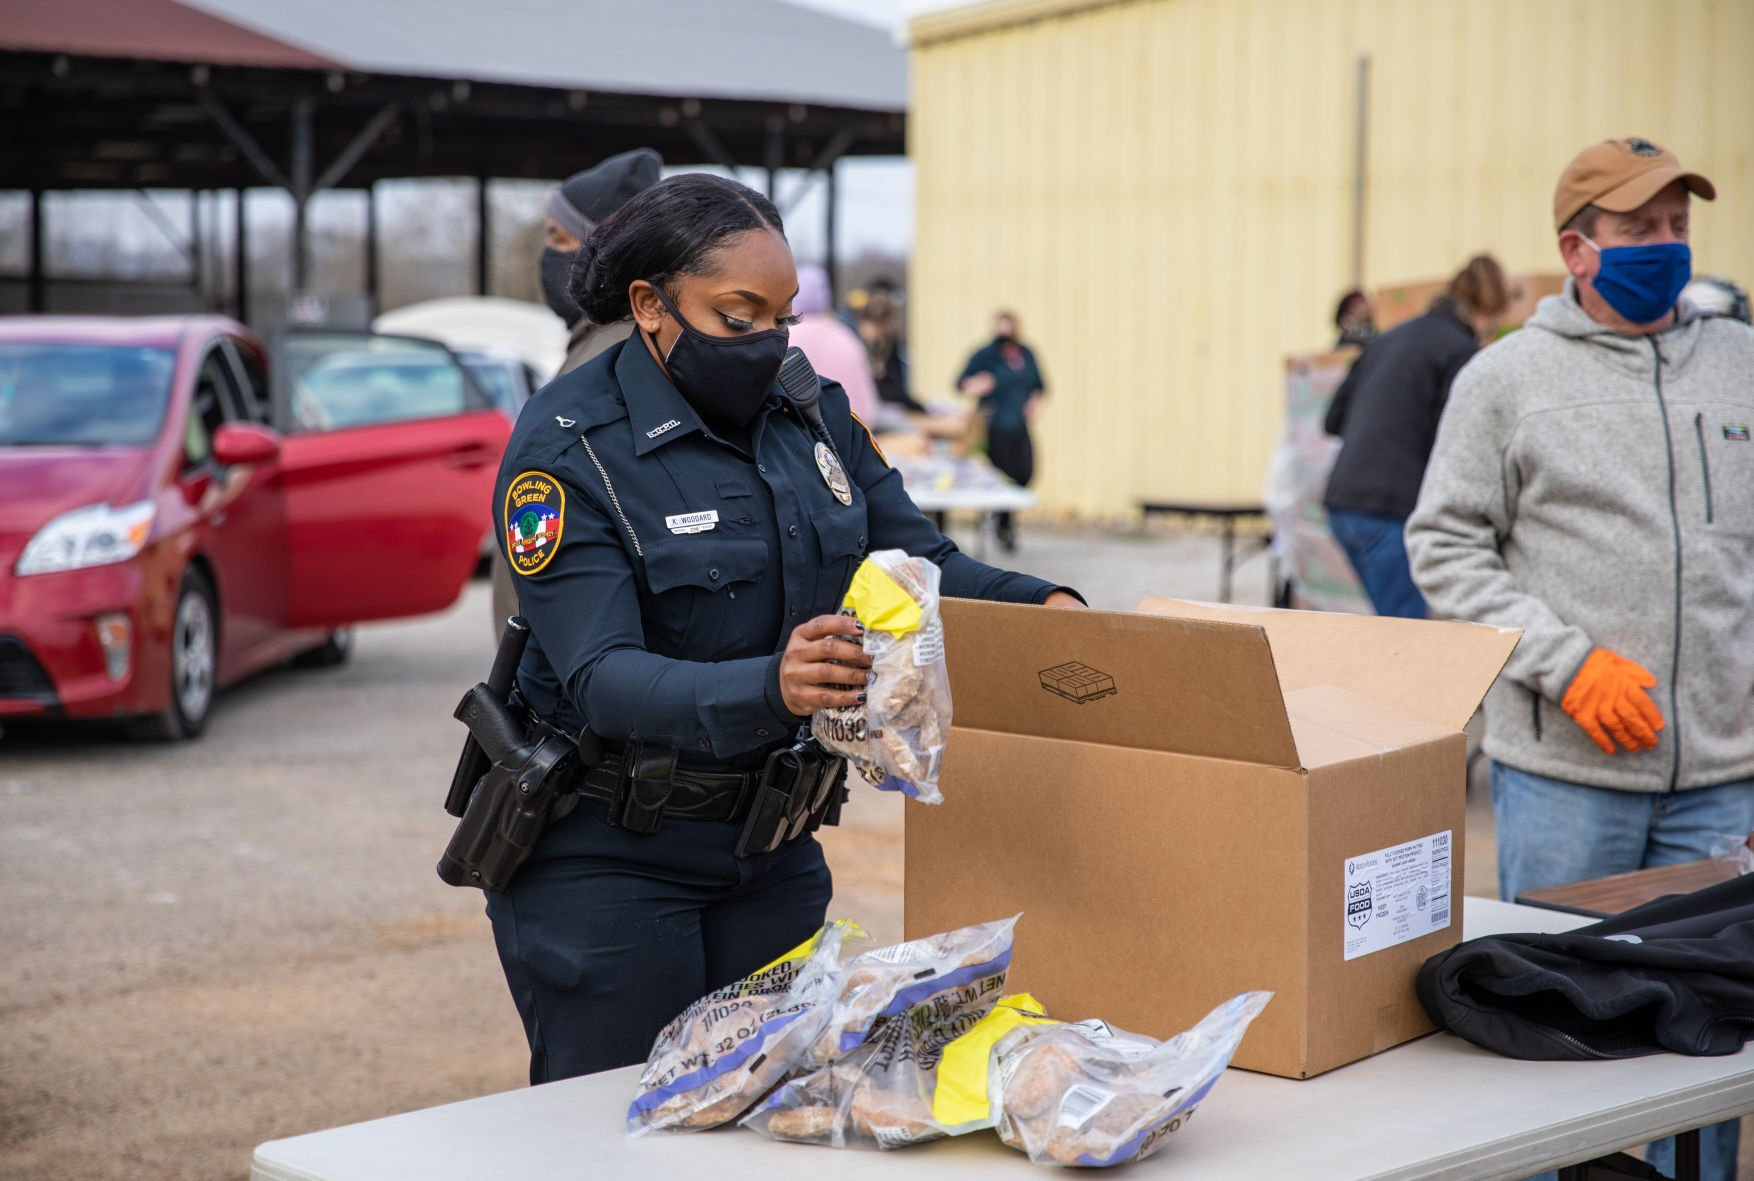 Food delivery 'another way of serving' for BGPD officers